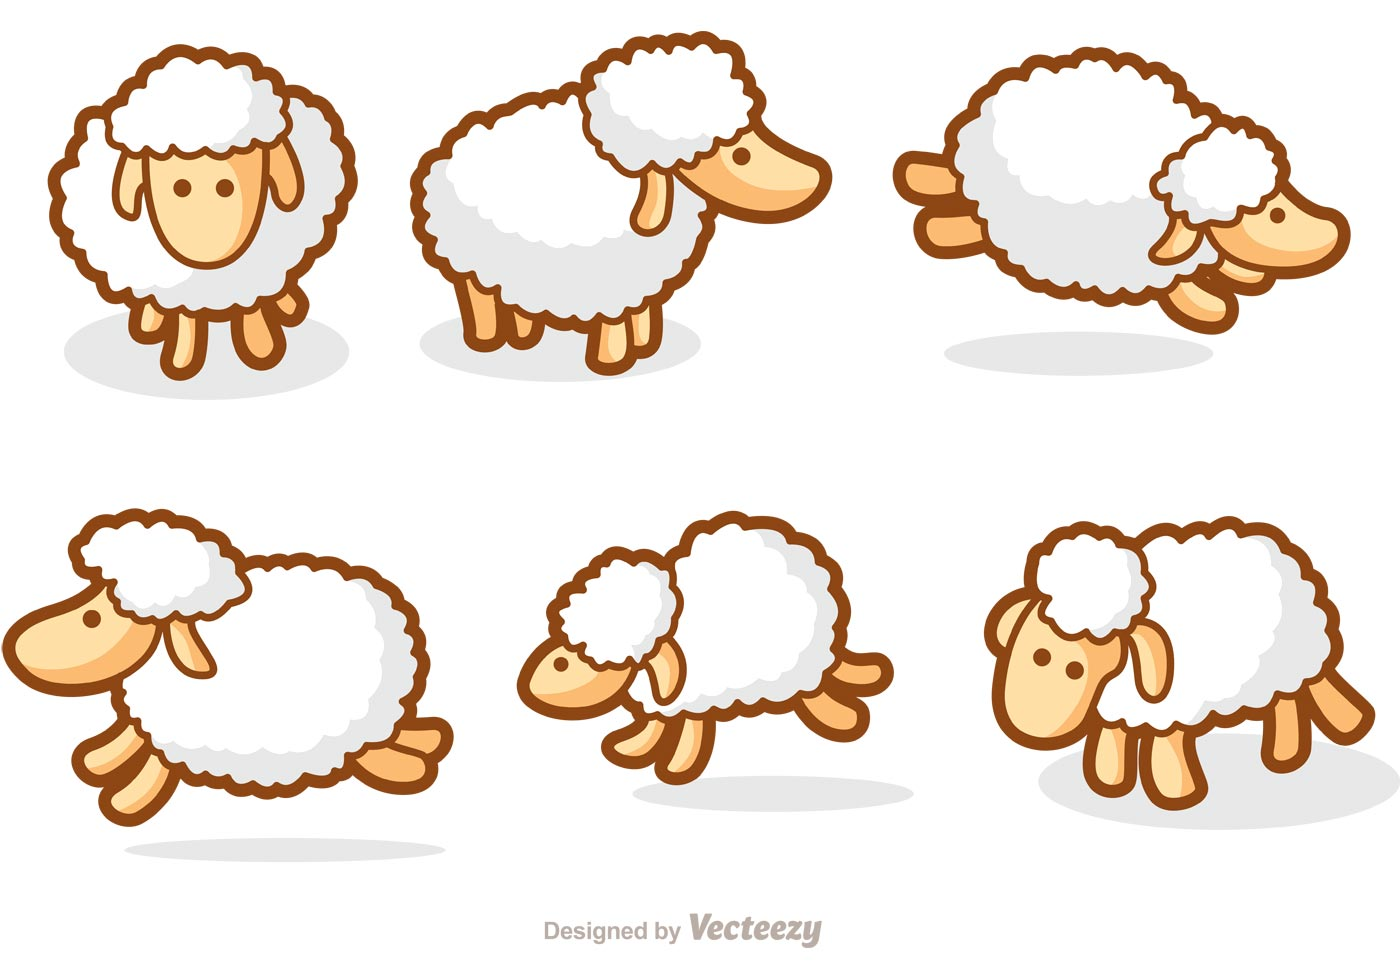 Cute Sheep Drawing Tumblr Cute Sheep Vectors Download Free Vector Art Stock